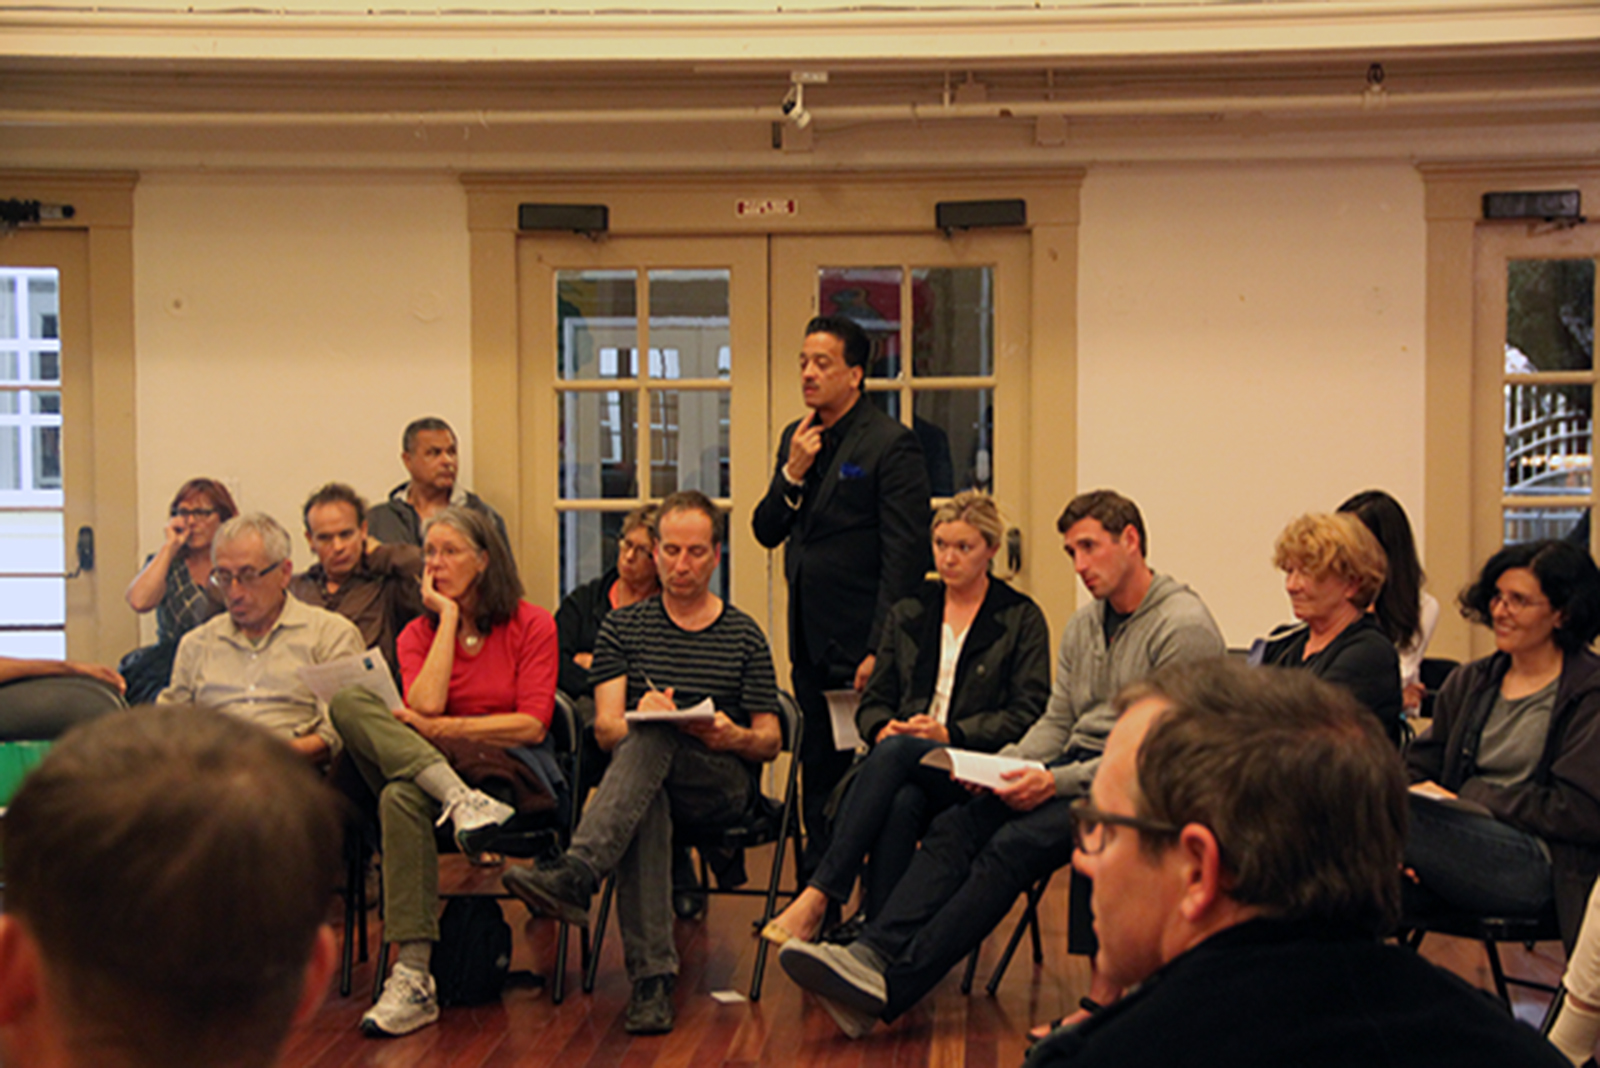 Community Meeting = Complaints + (Some) Solutions